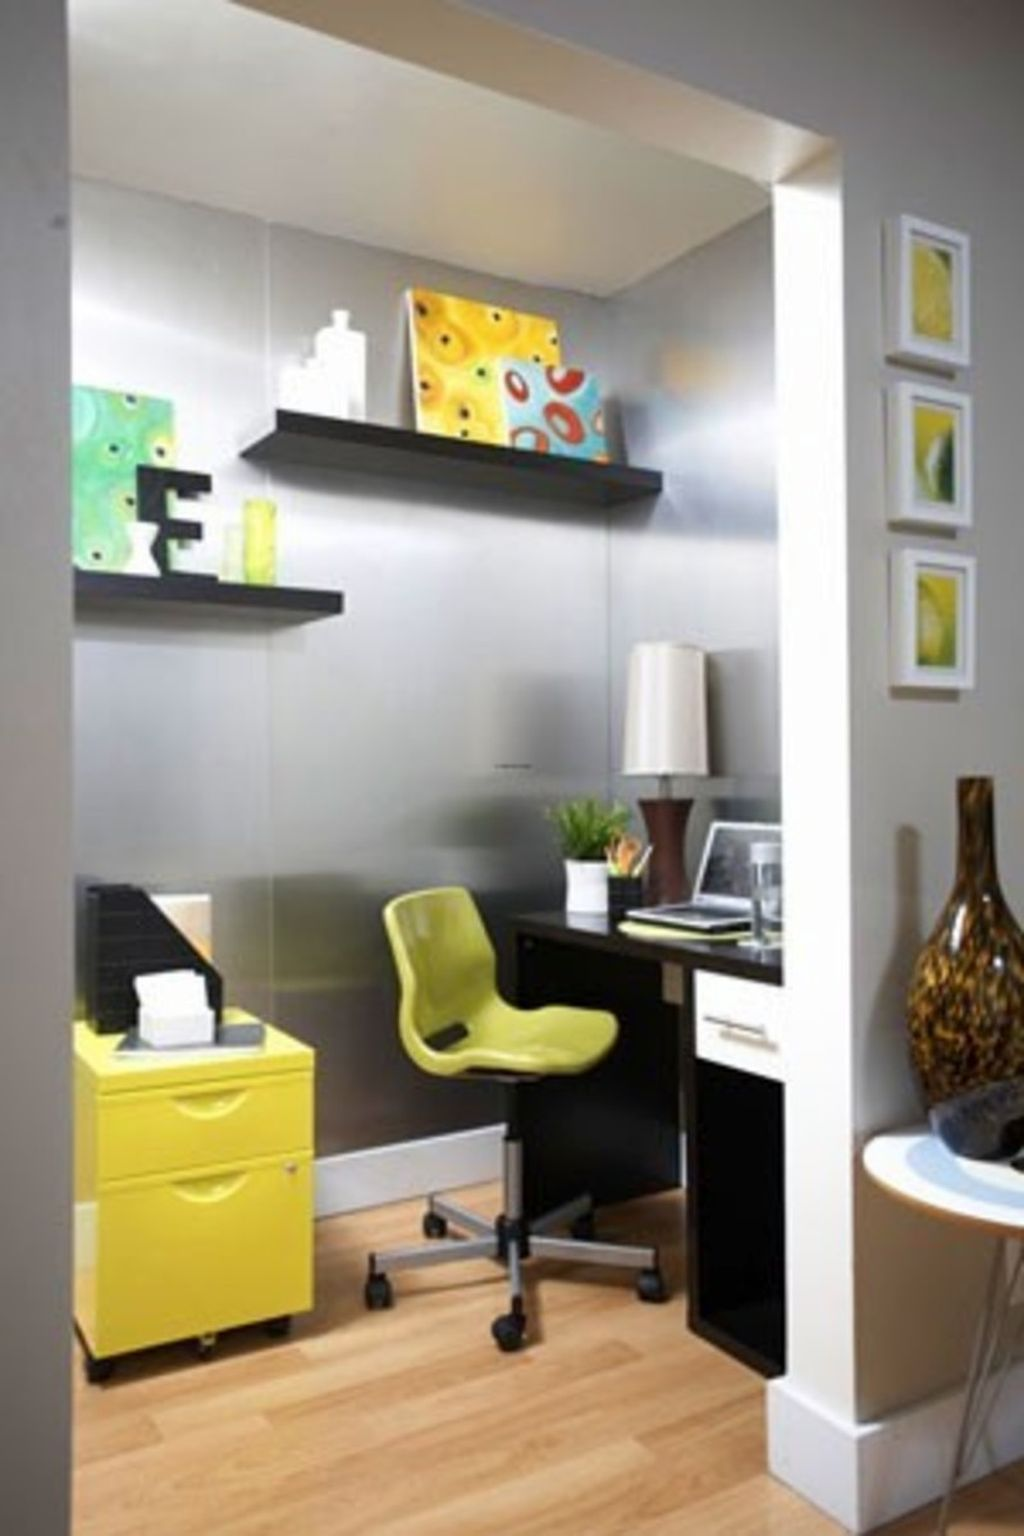 20 inspiring home office design ideas for small spaces Small space design ideas